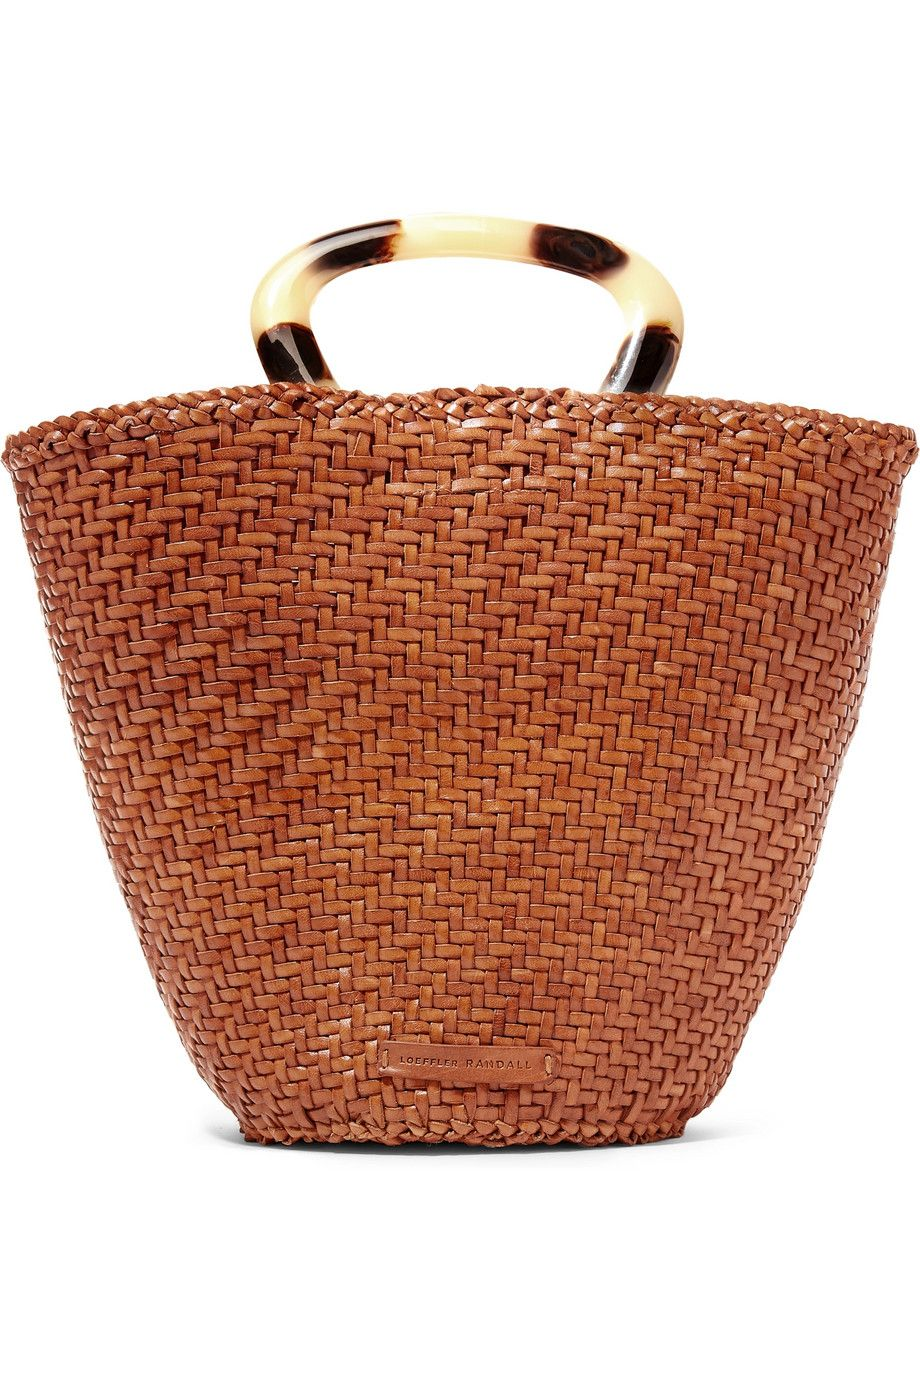 Agnes woven leather tote